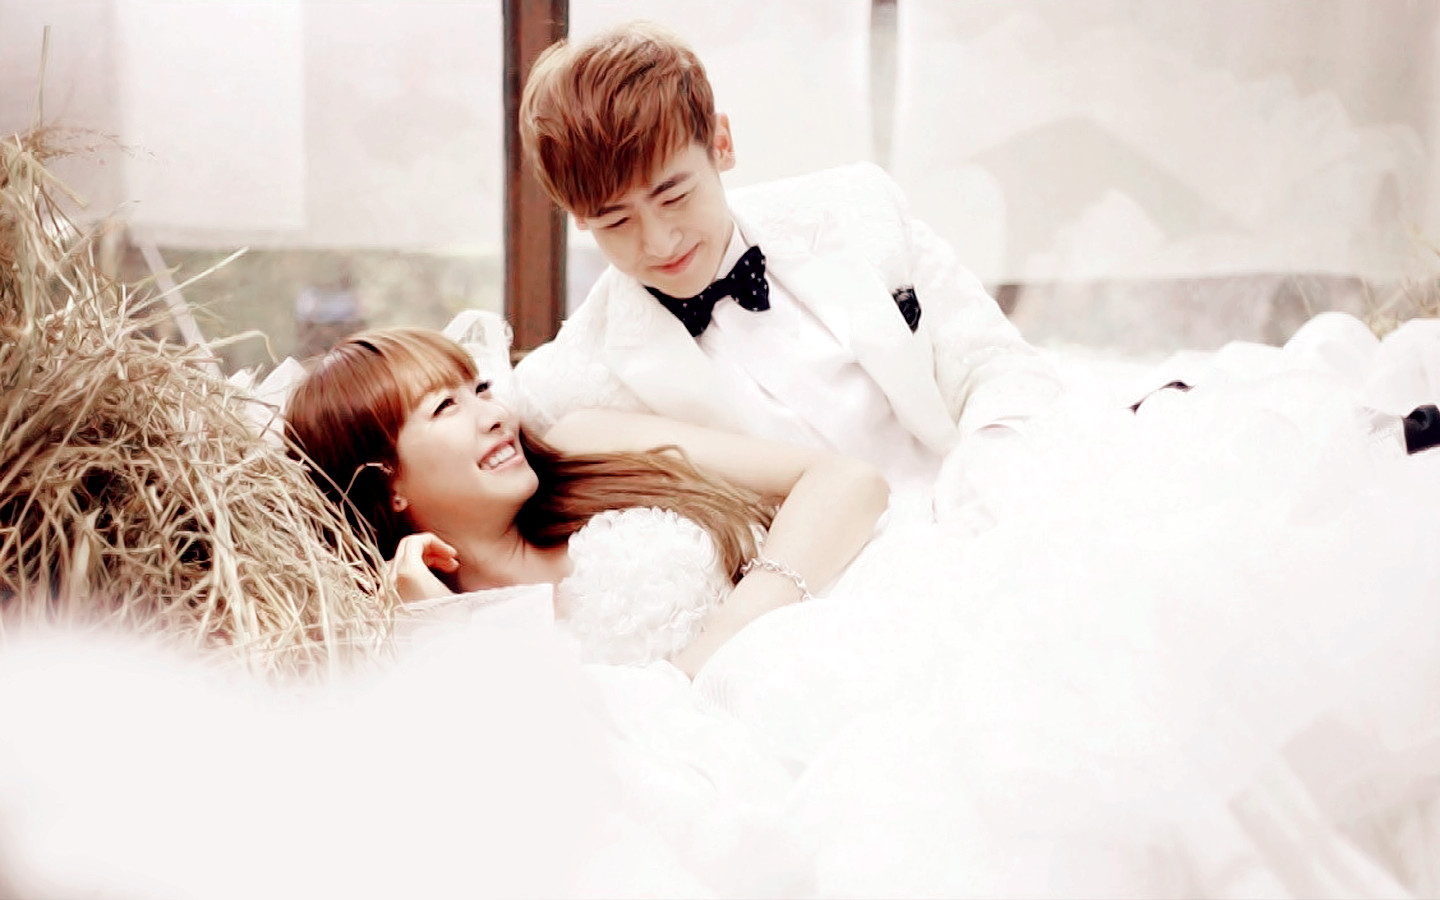 Know nichkhun and victoria officially dating